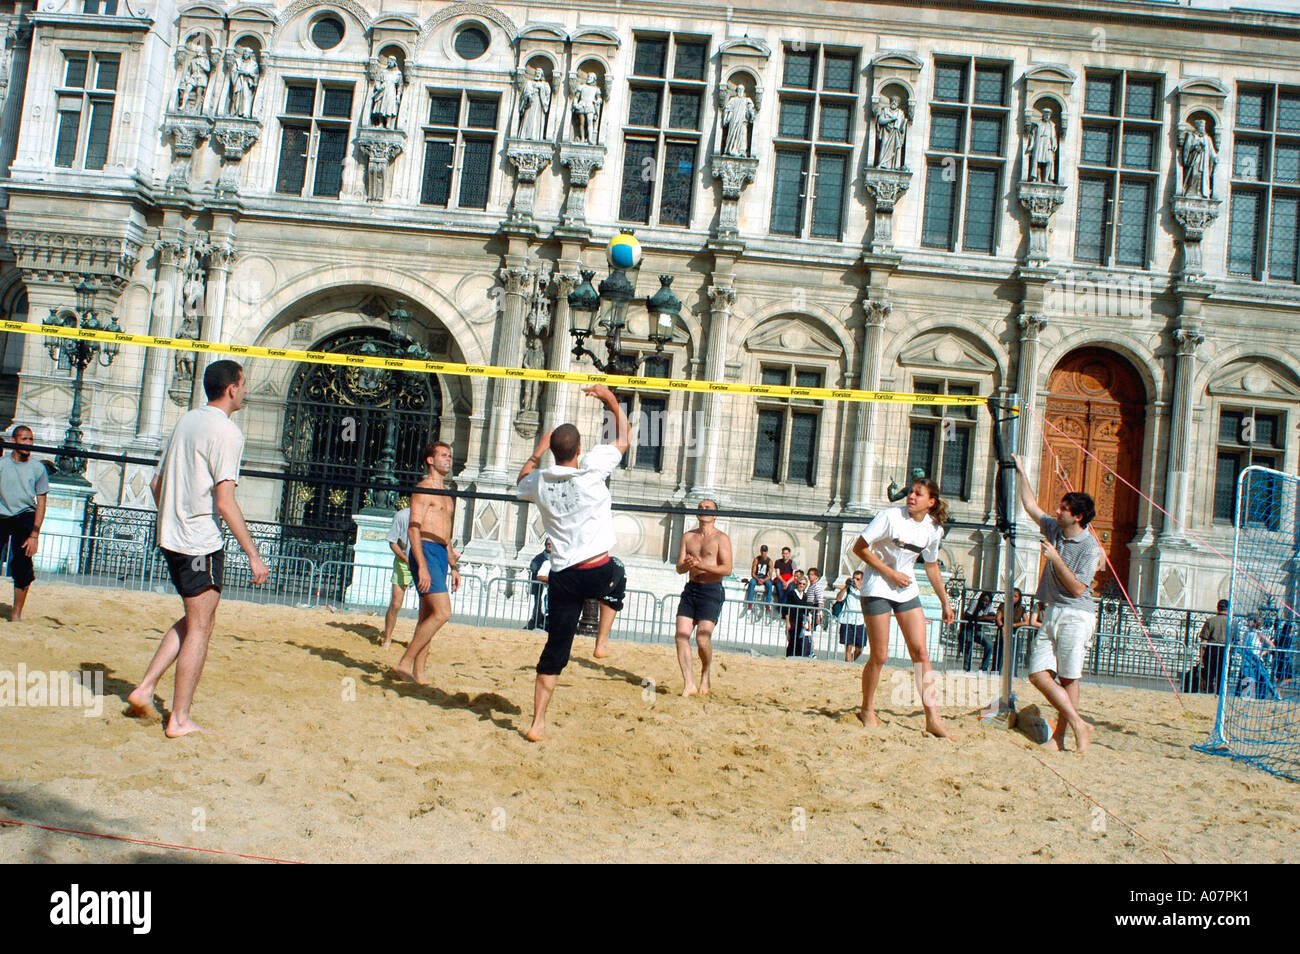 Paris France, Mixed Group French Teens On 'Paris Plages' Event, Playing Beach Volleyball on Street River Seine plage - Stock Image